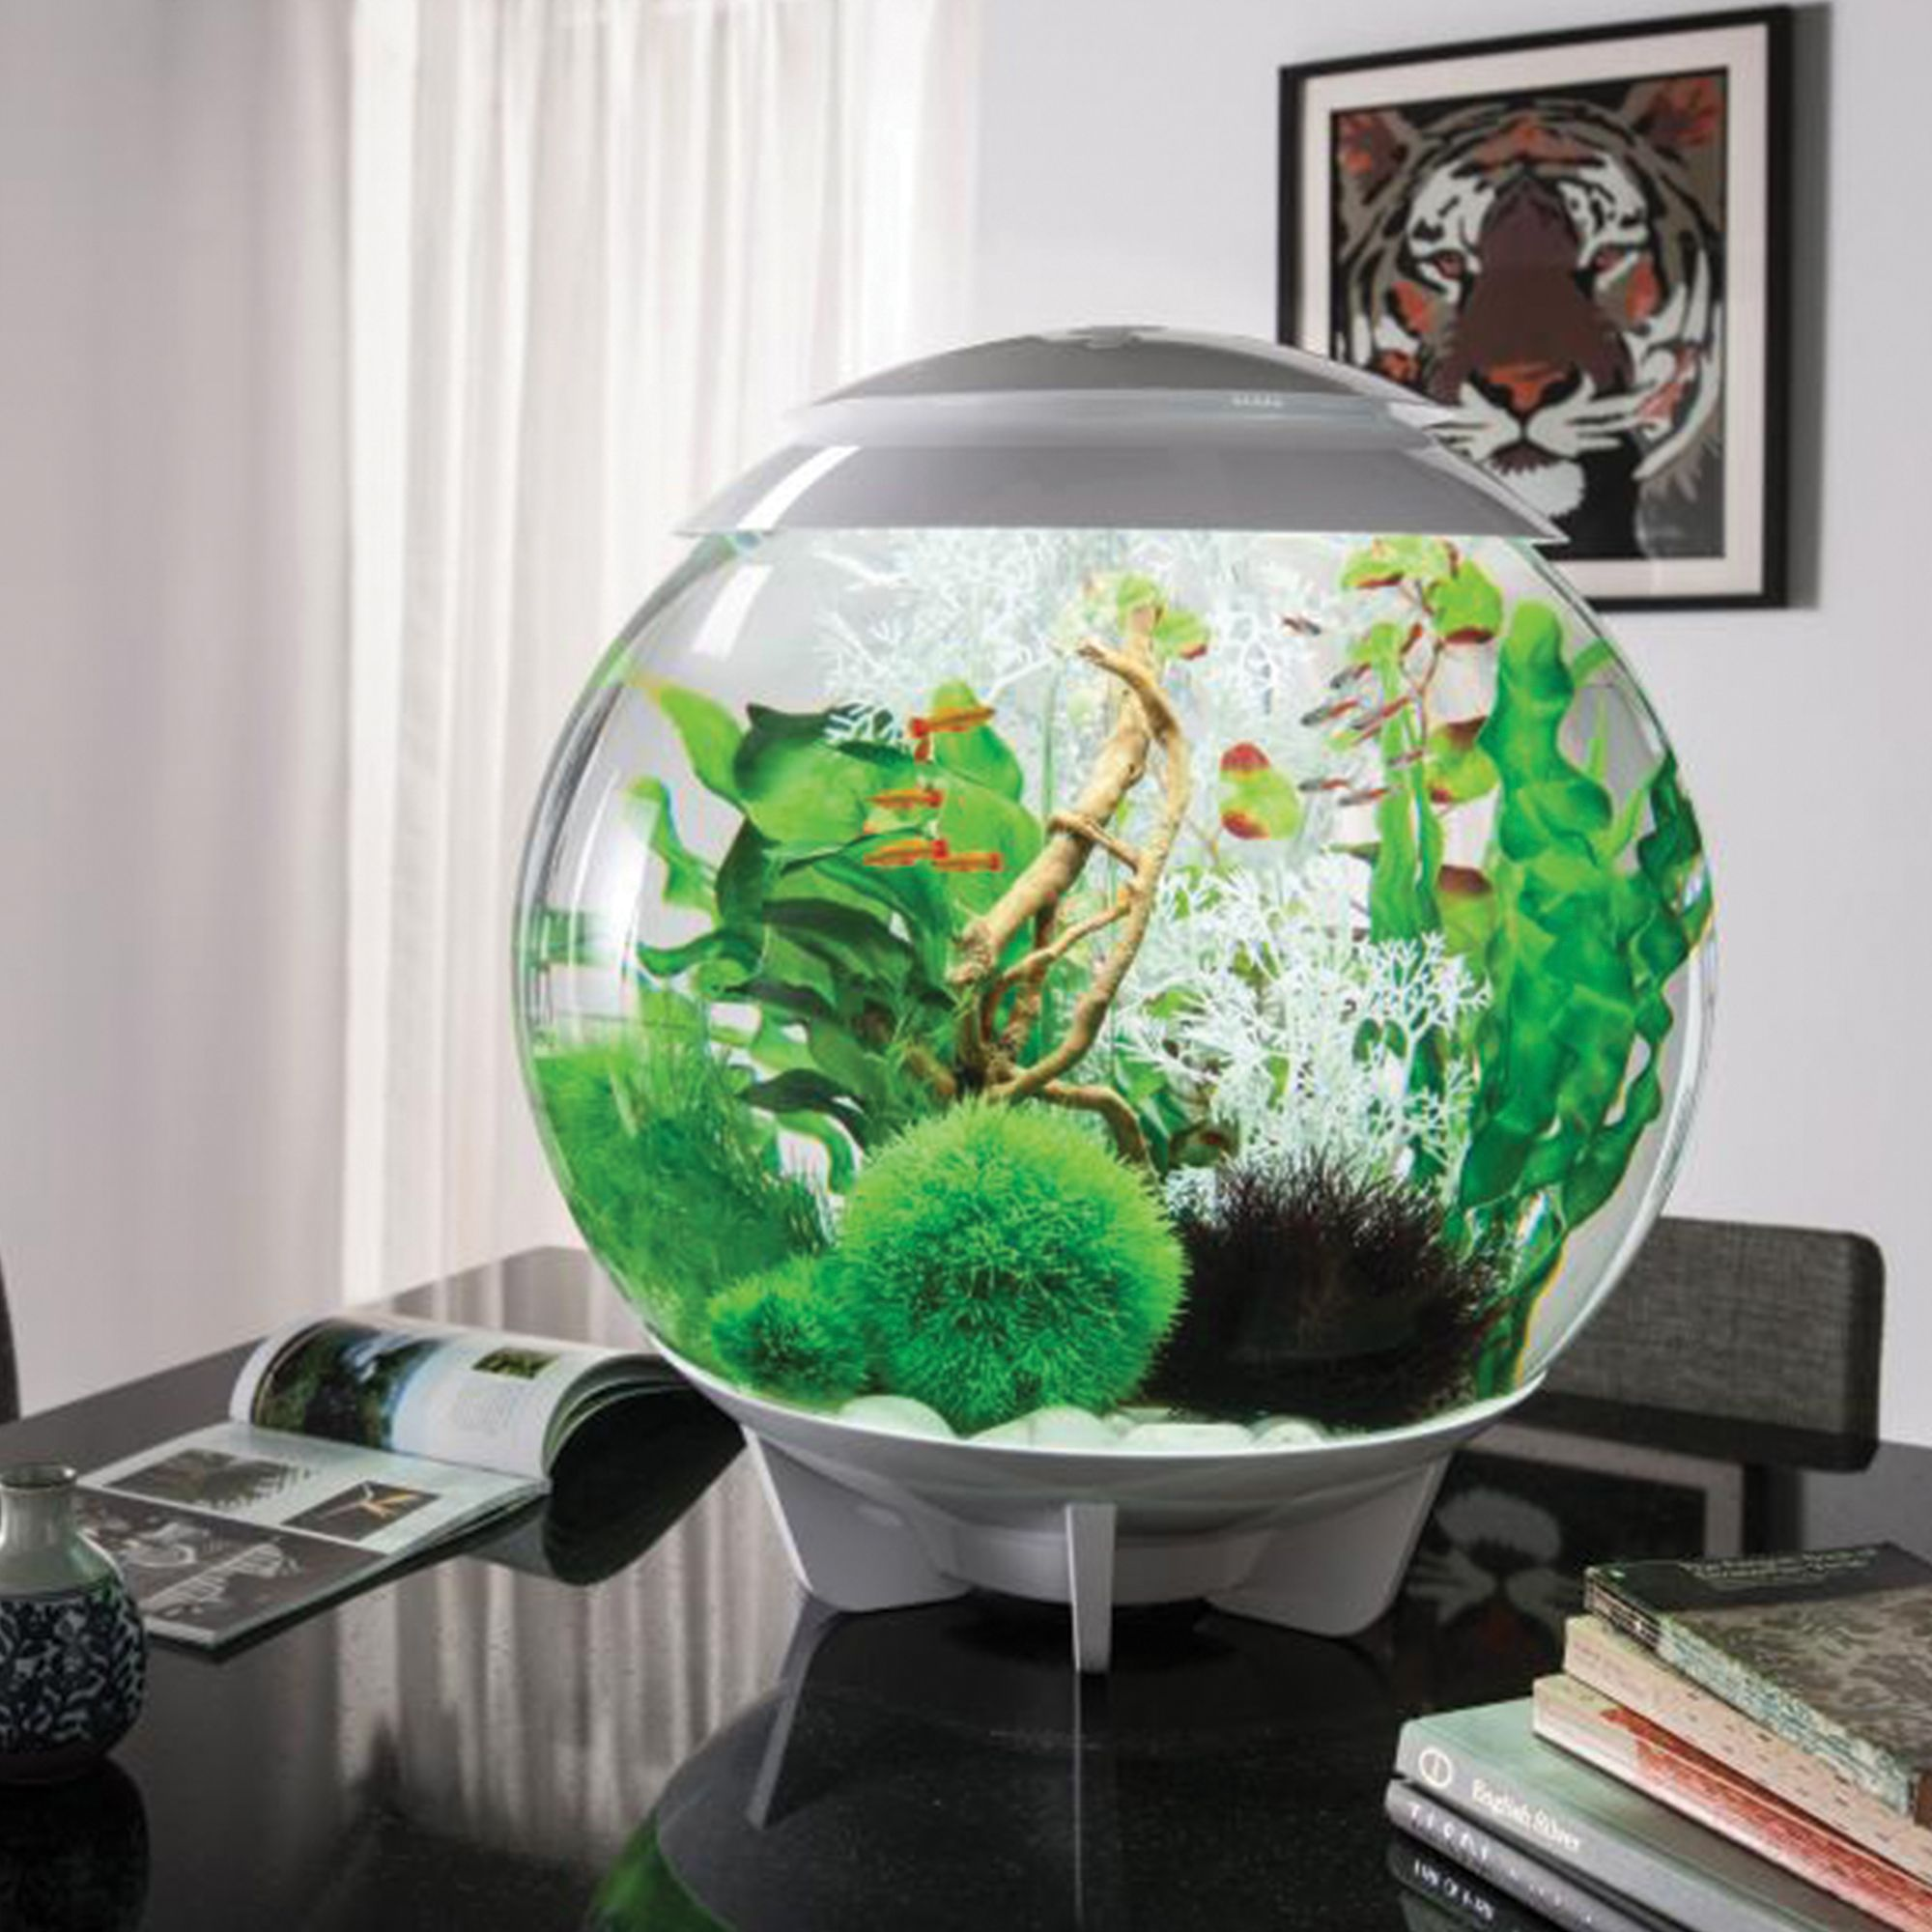 Home Aquarium Design Ideas: The BiOrb HALO 60, Which Is A 16 US